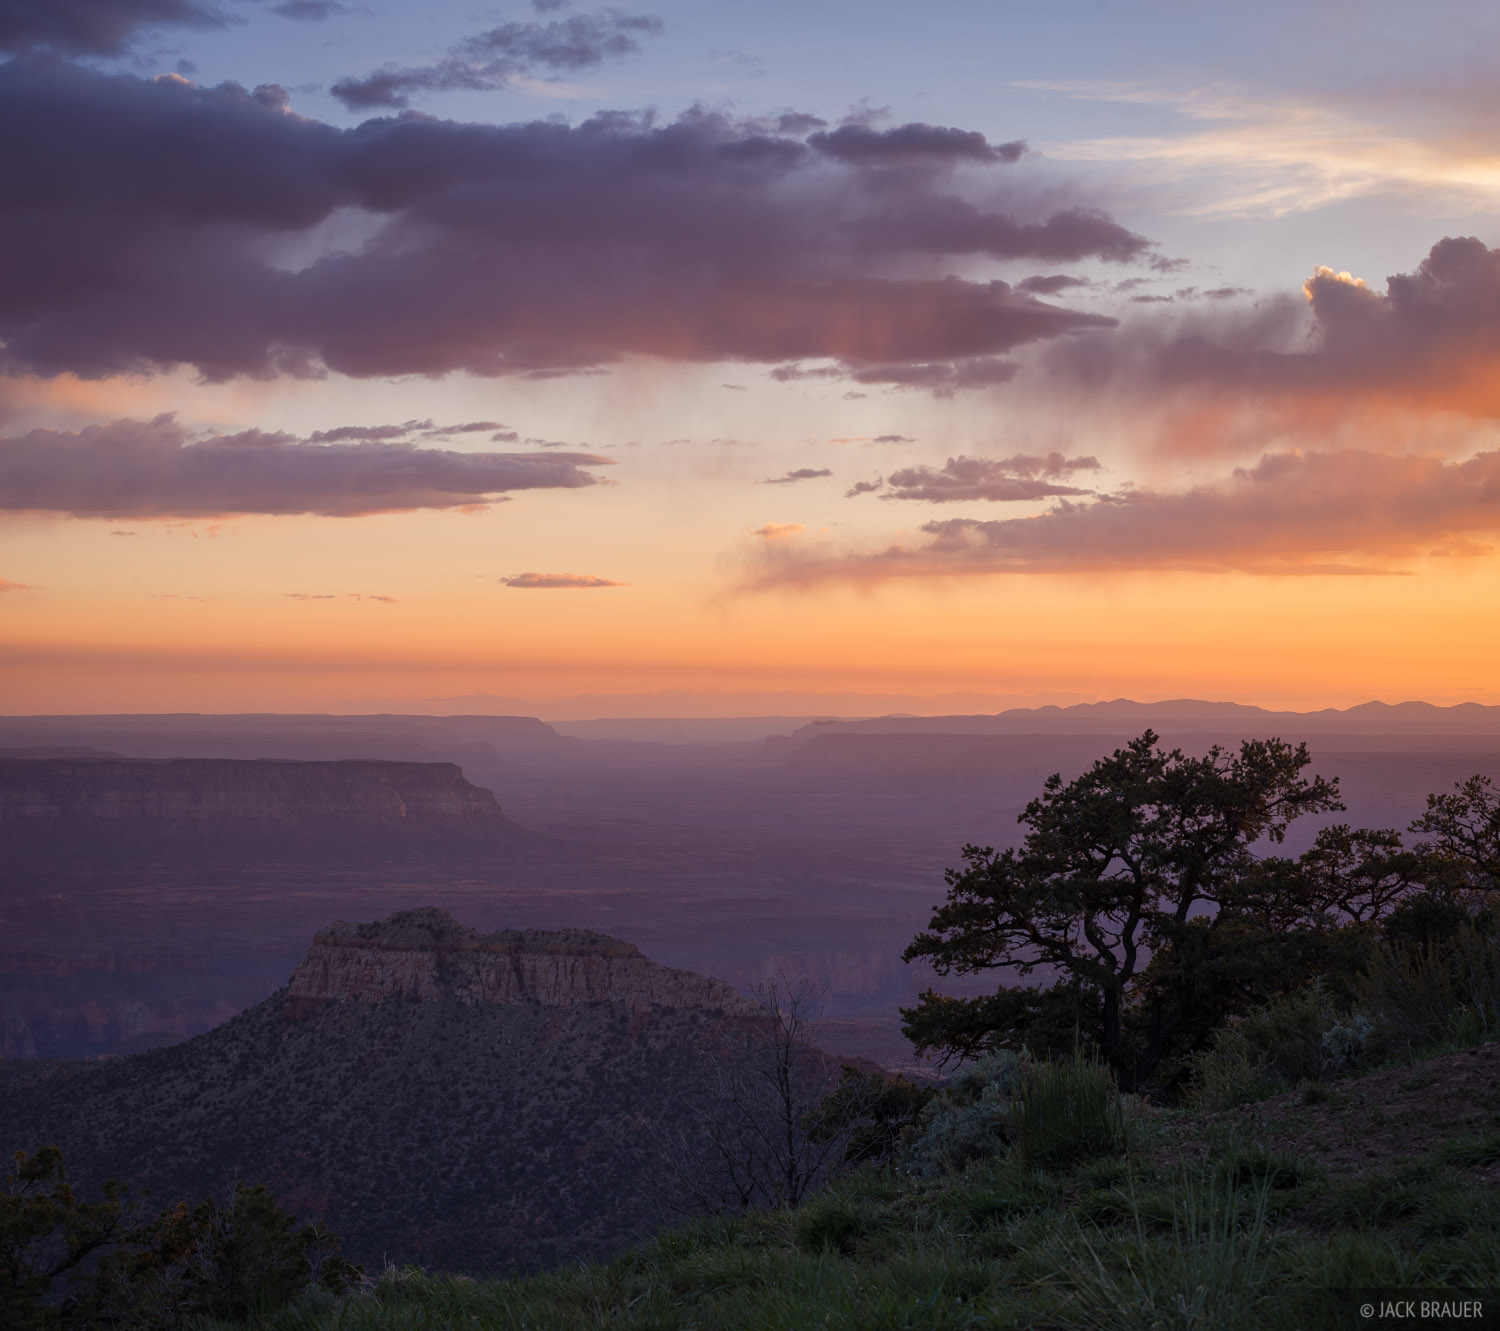 Sunset over the Grand Canyon, as seen from near Crazy Jug Point.